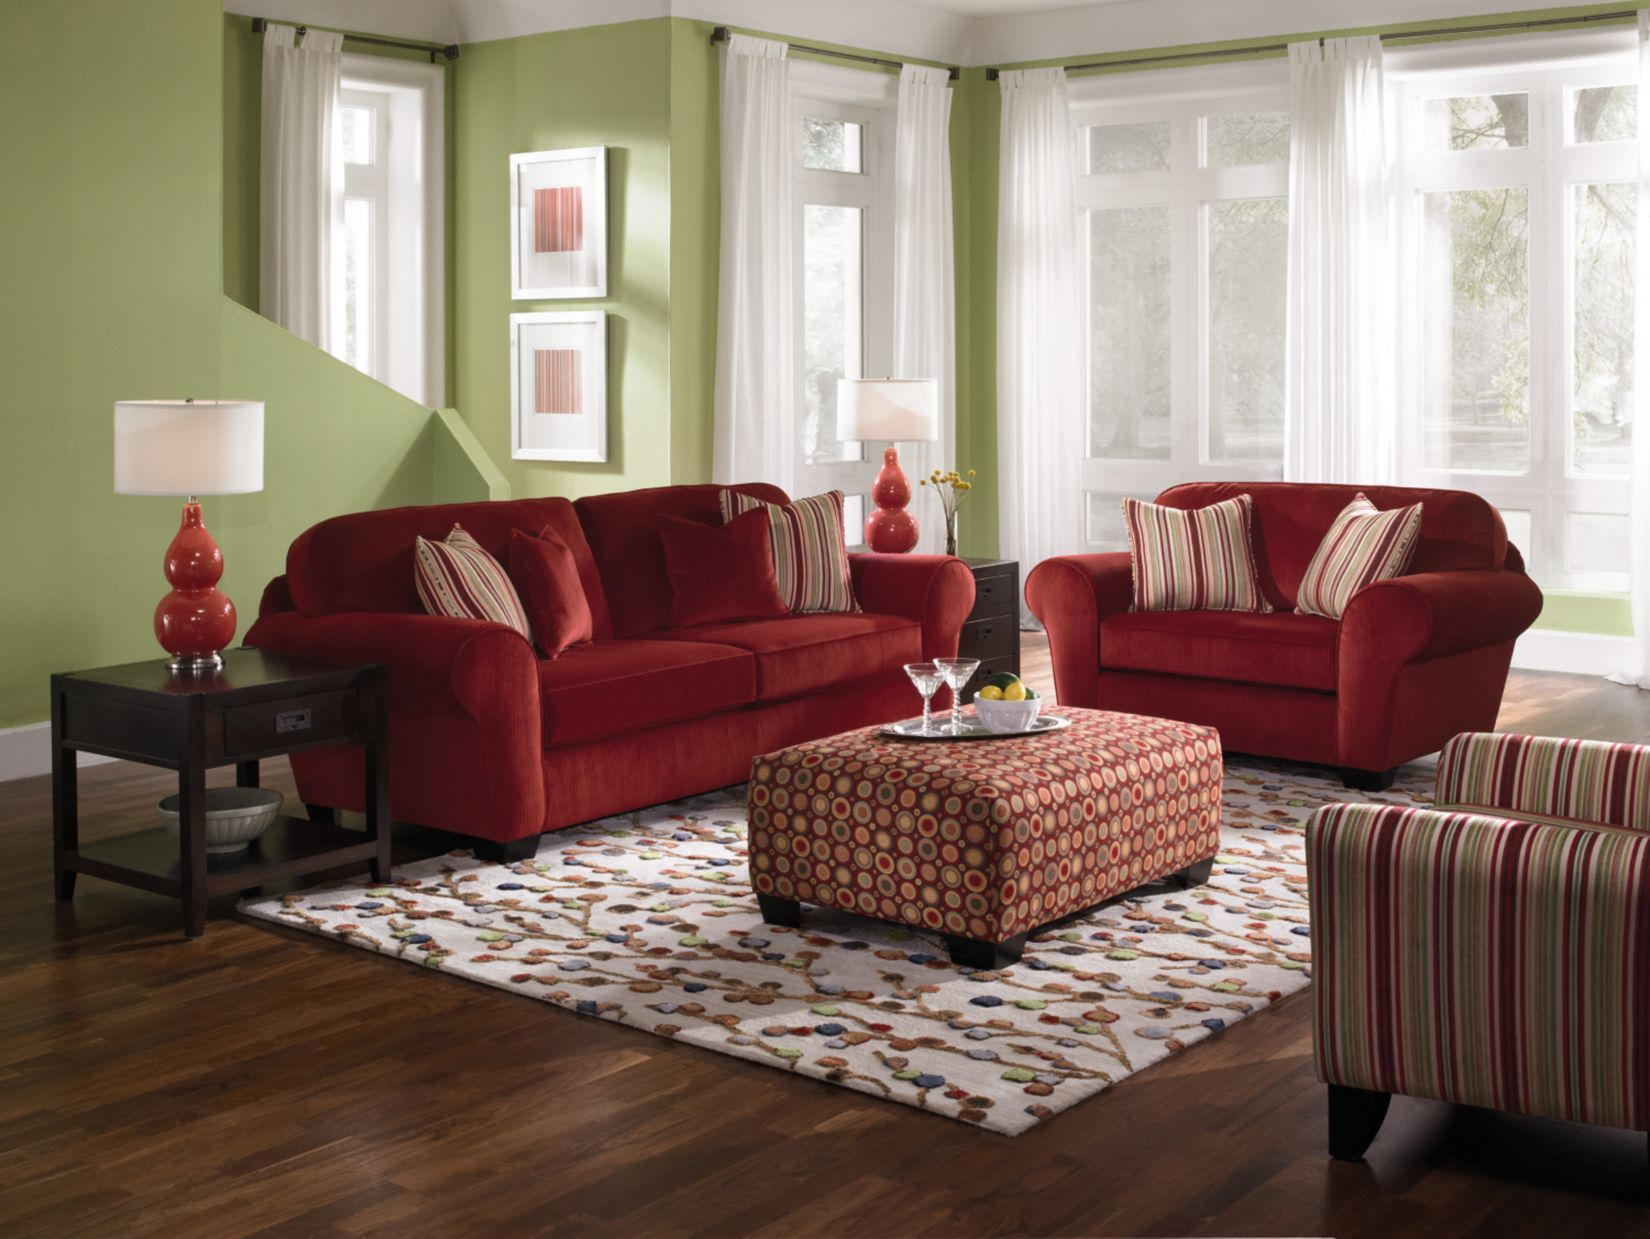 American Signature Furniture Living Room Decor Furniture Living Room Green Living Room Color Schemes #red #and #green #living #room